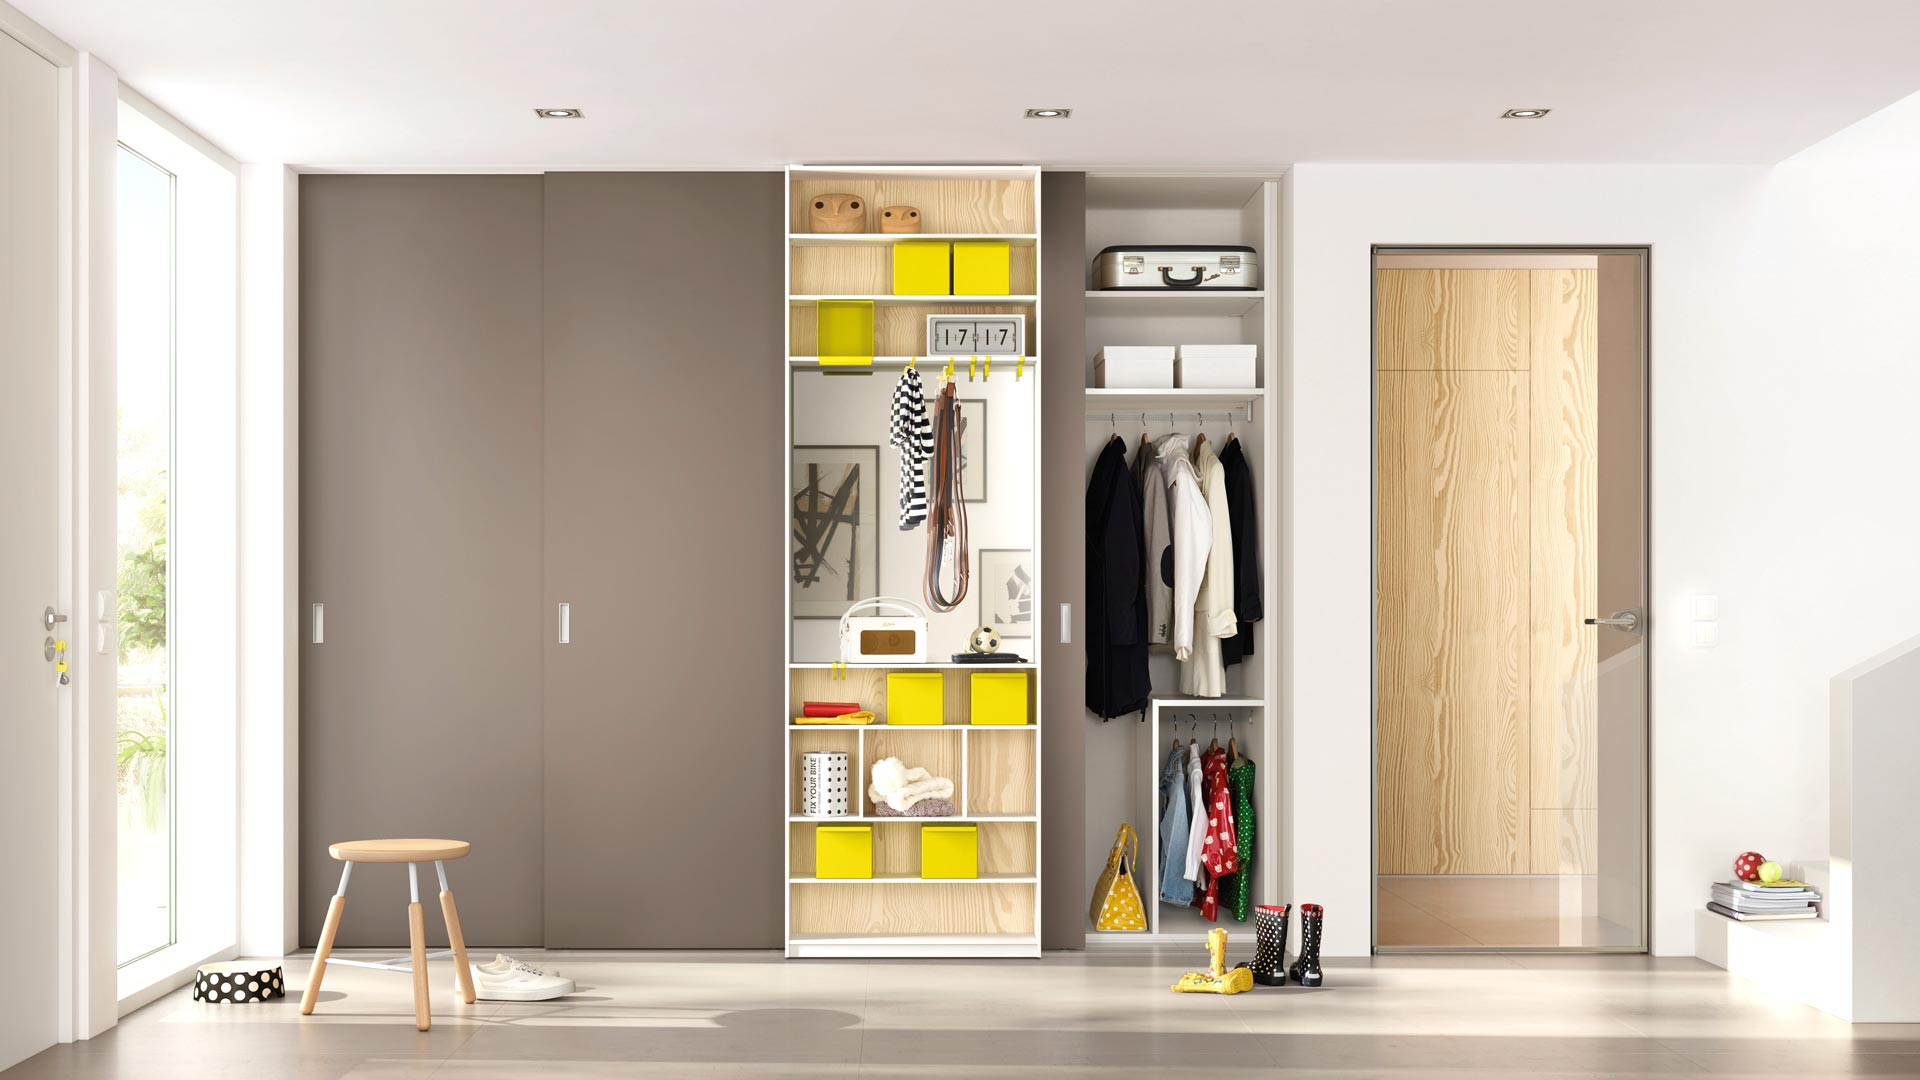 Sliding doors – excellent functionality and efficiently used space